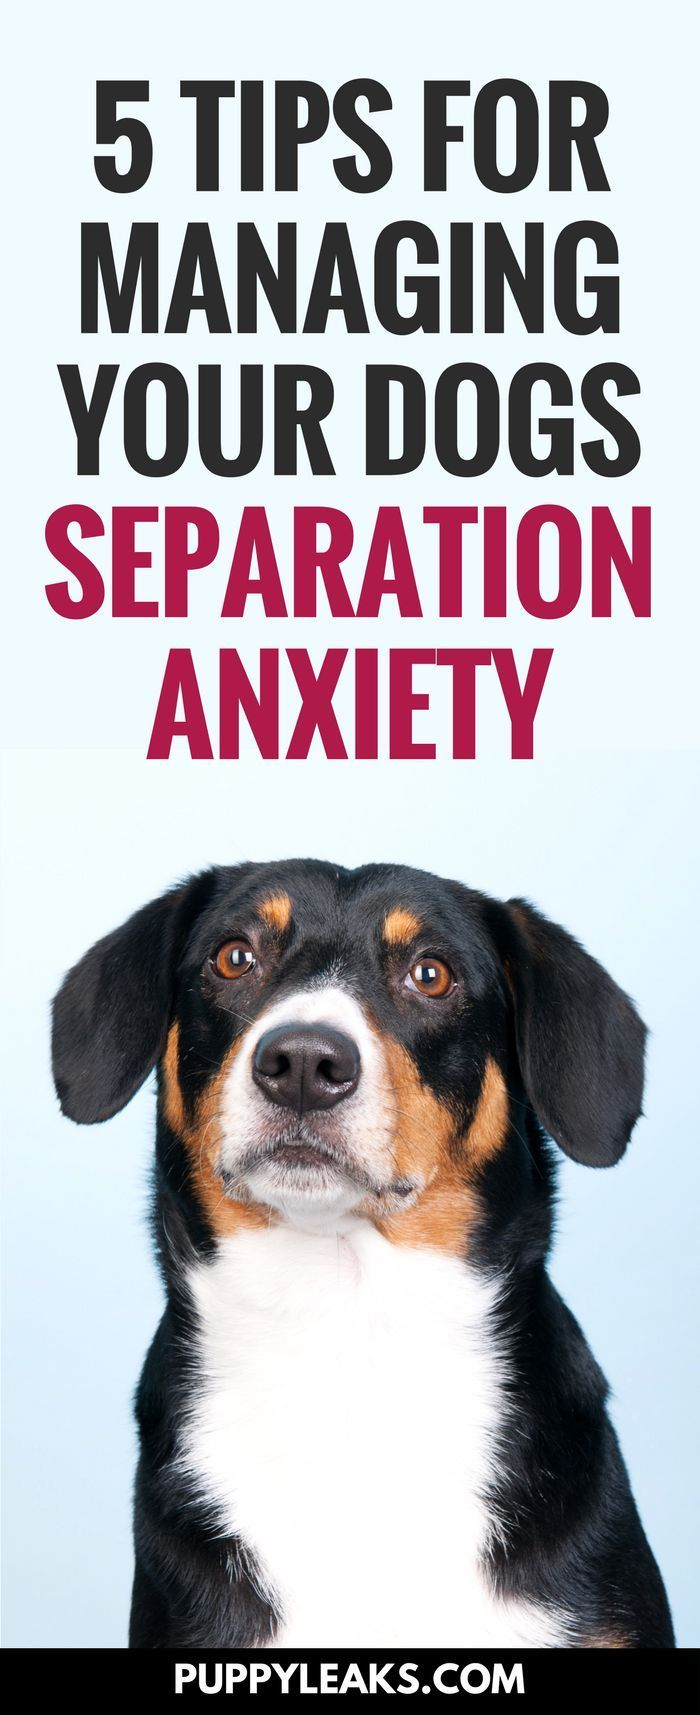 Does your dog get nervous and anxious when you leave? If so they're exhibiting signs of canine separation anxiety. Here's 5 tips to help manage your dog's separation anxiety. #dogs #dogtraining #dogtips #dogadvice